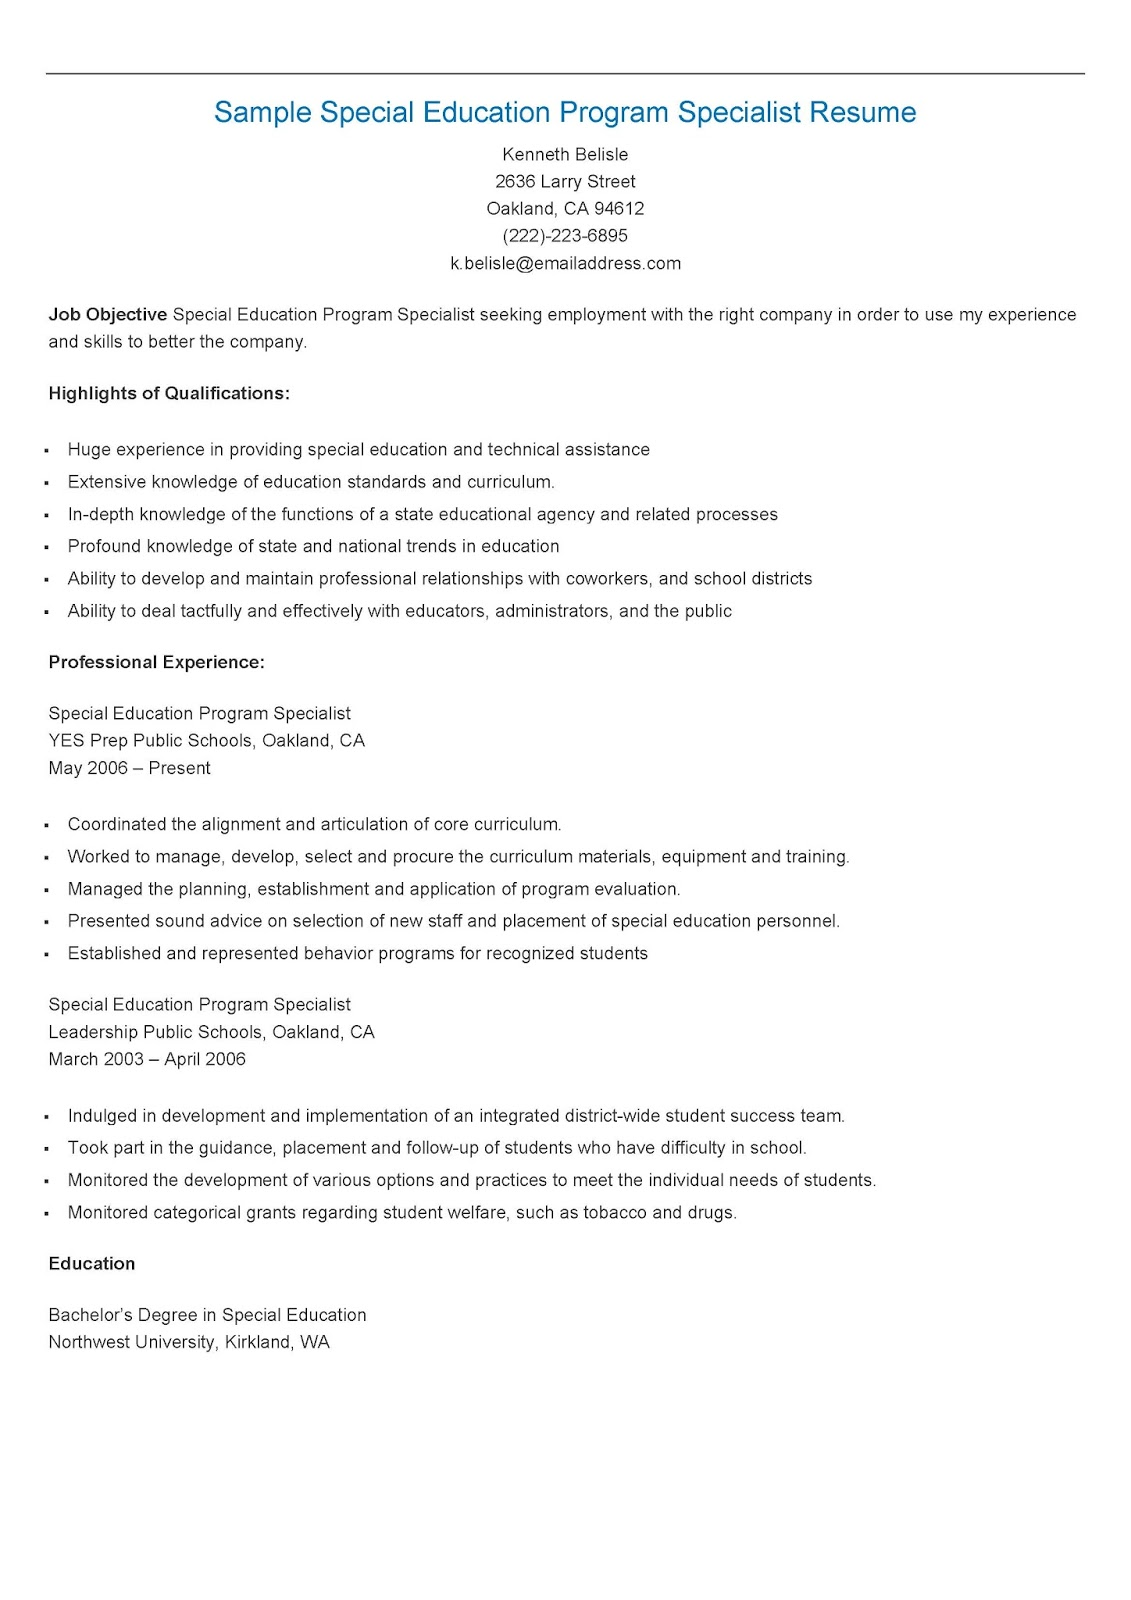 resume sles sle special education program